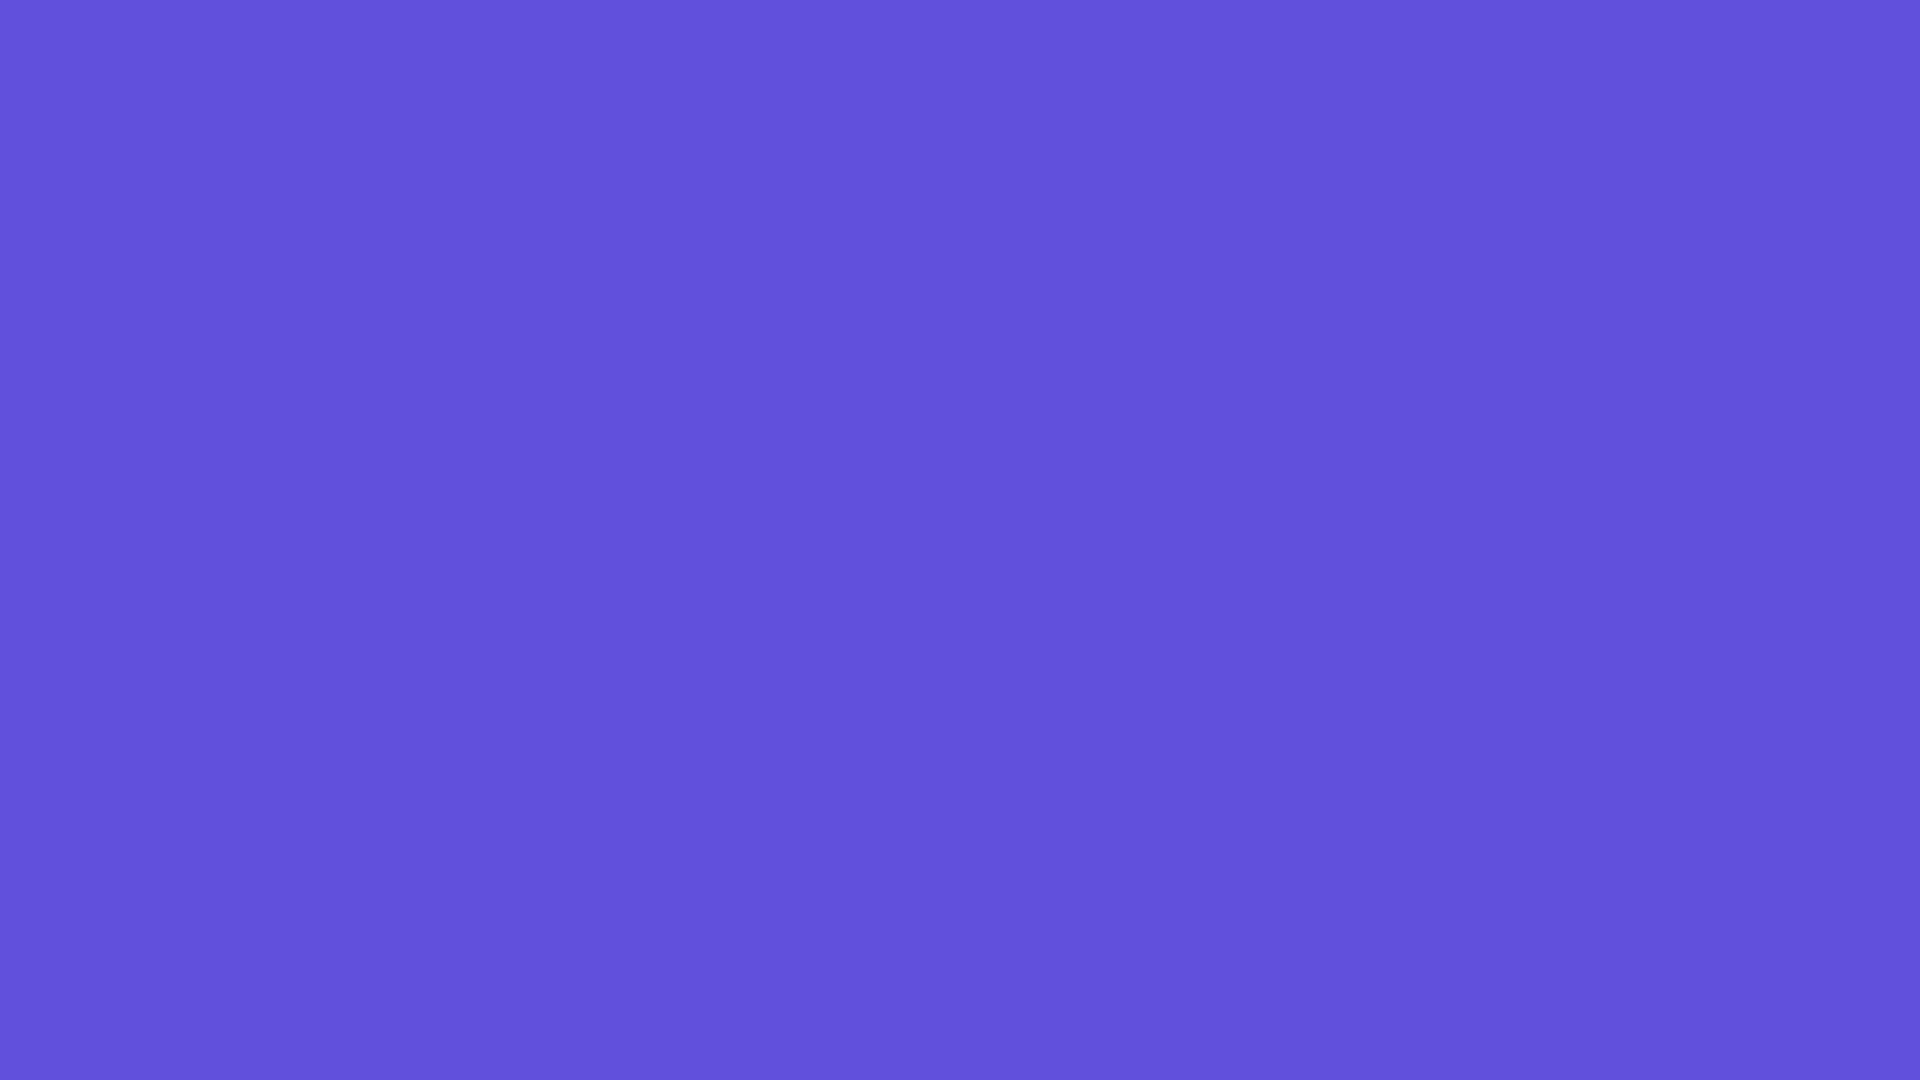 1920x1080 Majorelle Blue Solid Color Background